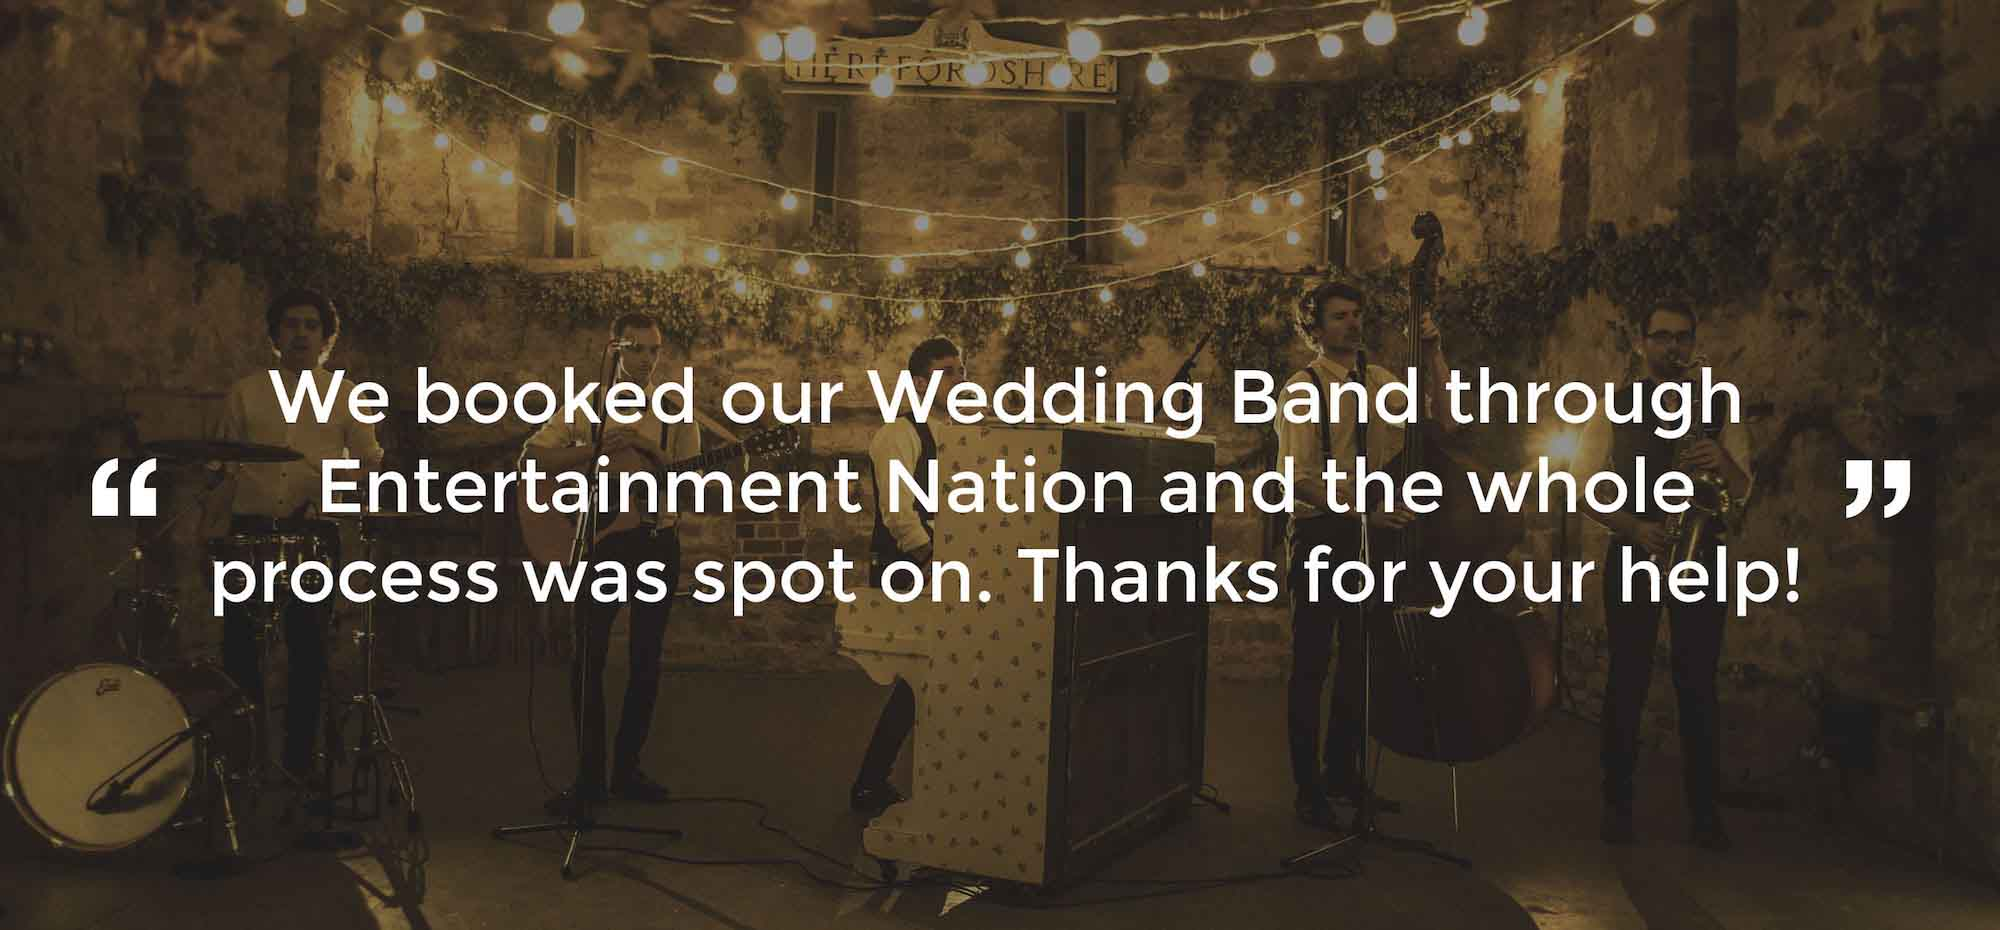 Client Review of a Wedding Band Oxfordshire